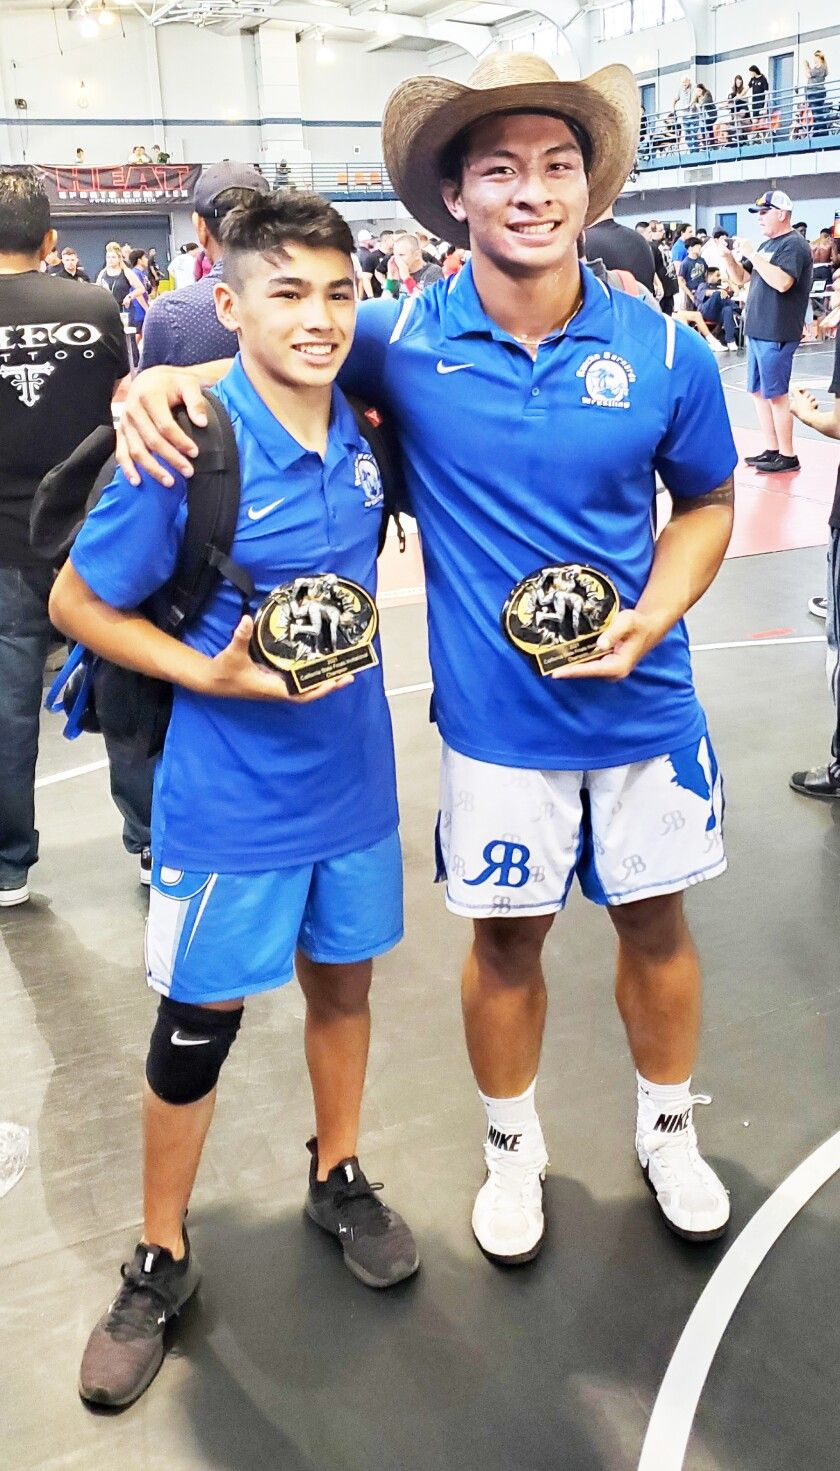 Jacob Jones and Javen Jovero after winning their state titles.